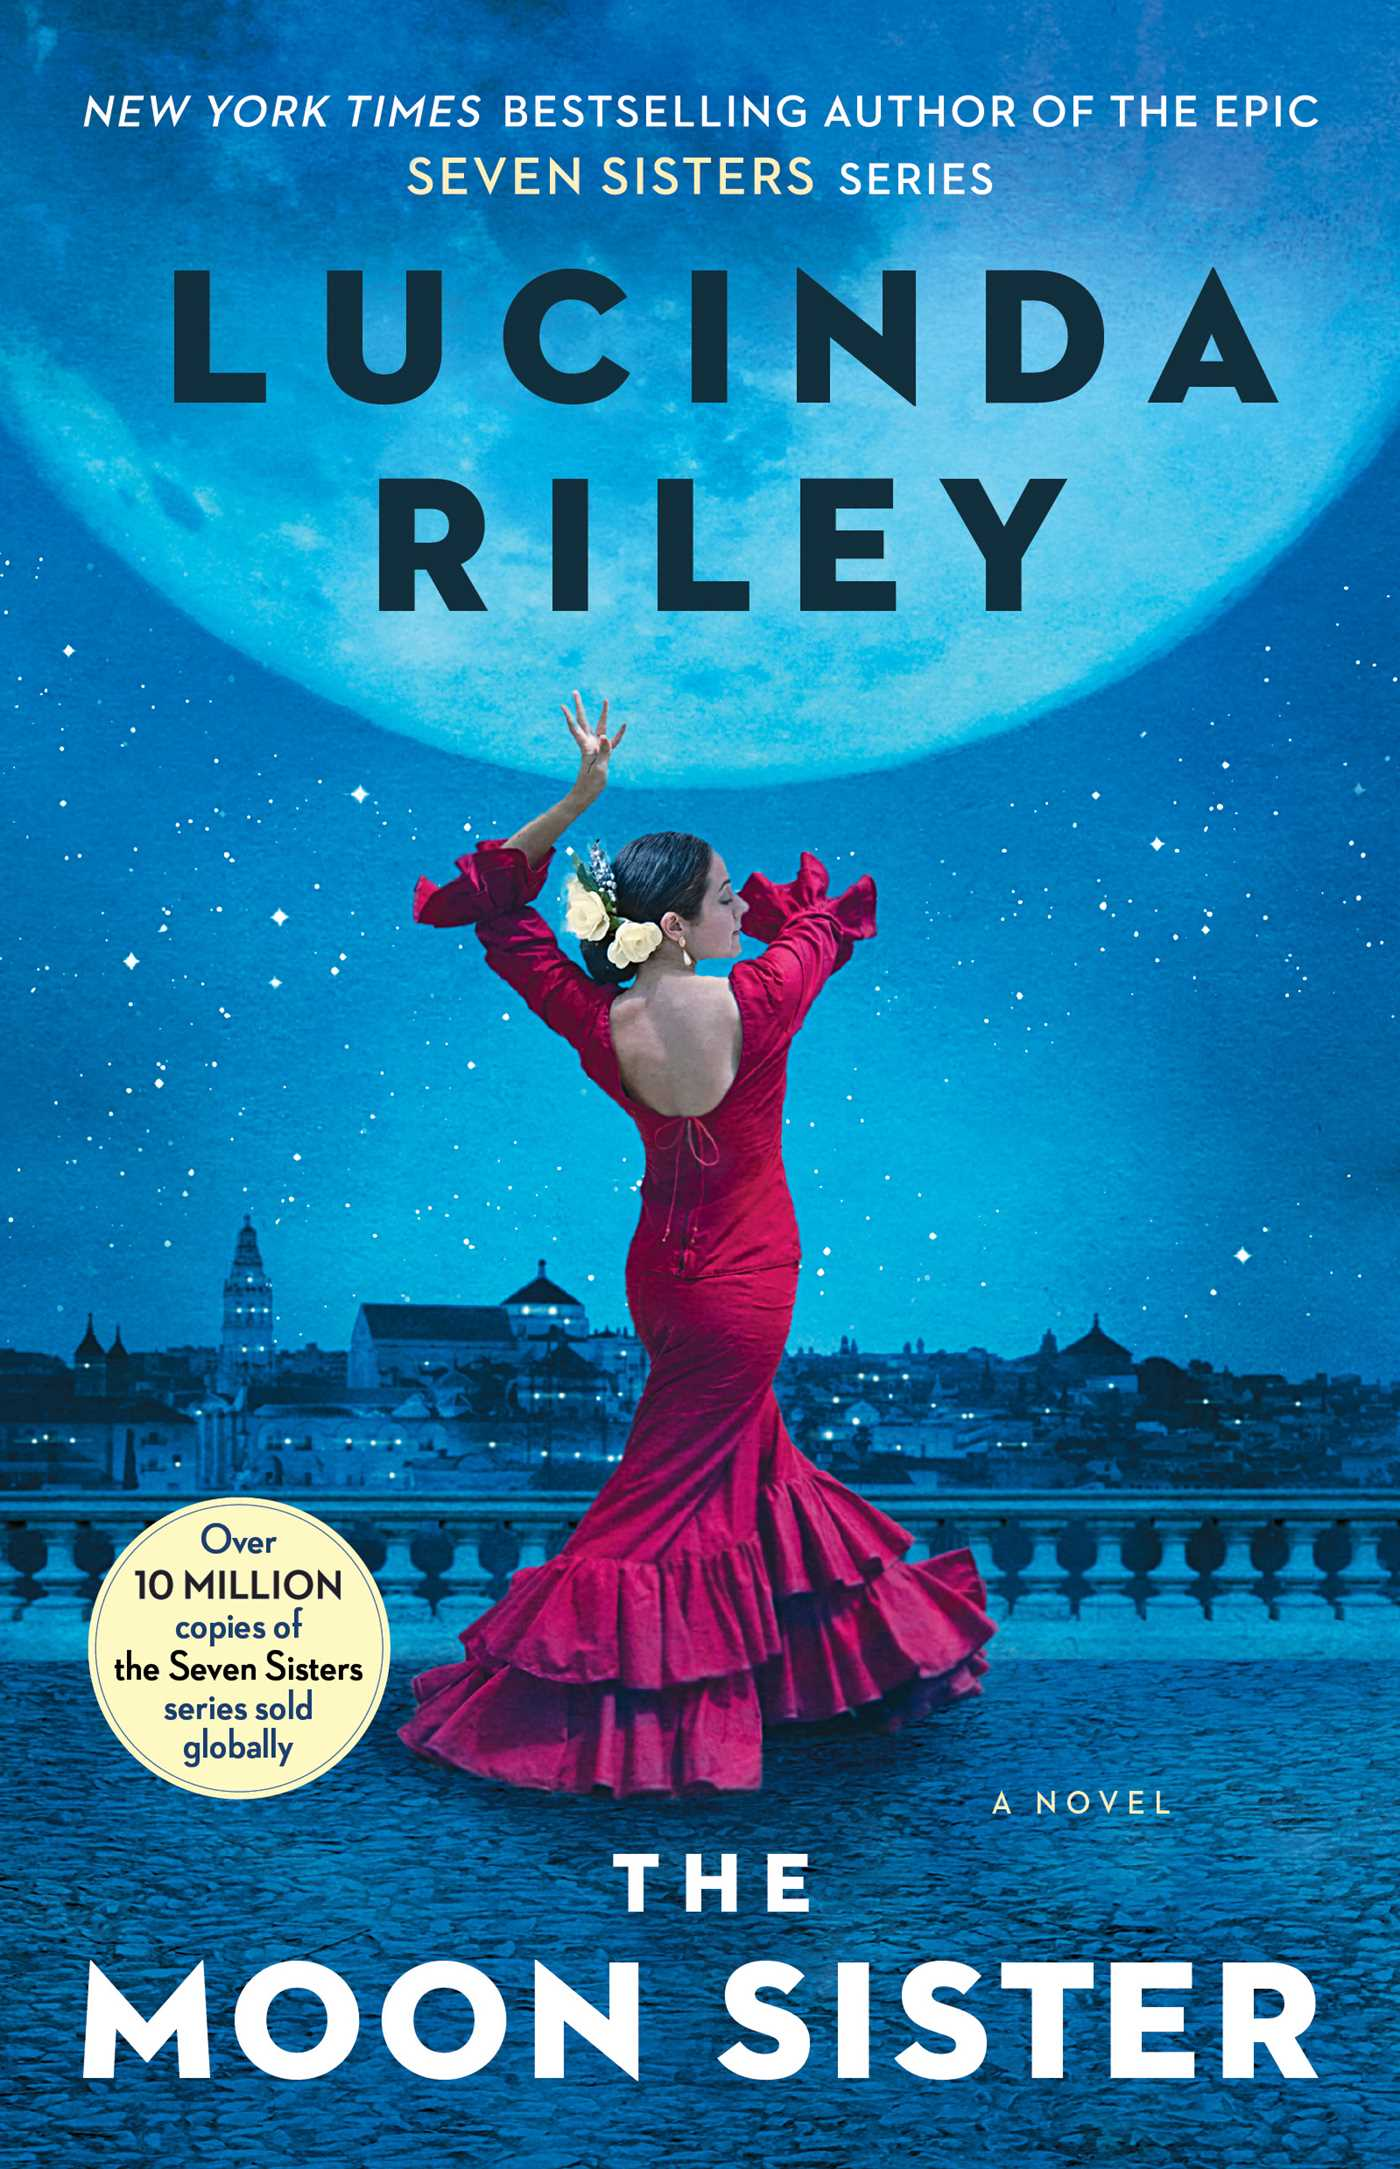 The Moon Sister [electronic resource] : A Novel